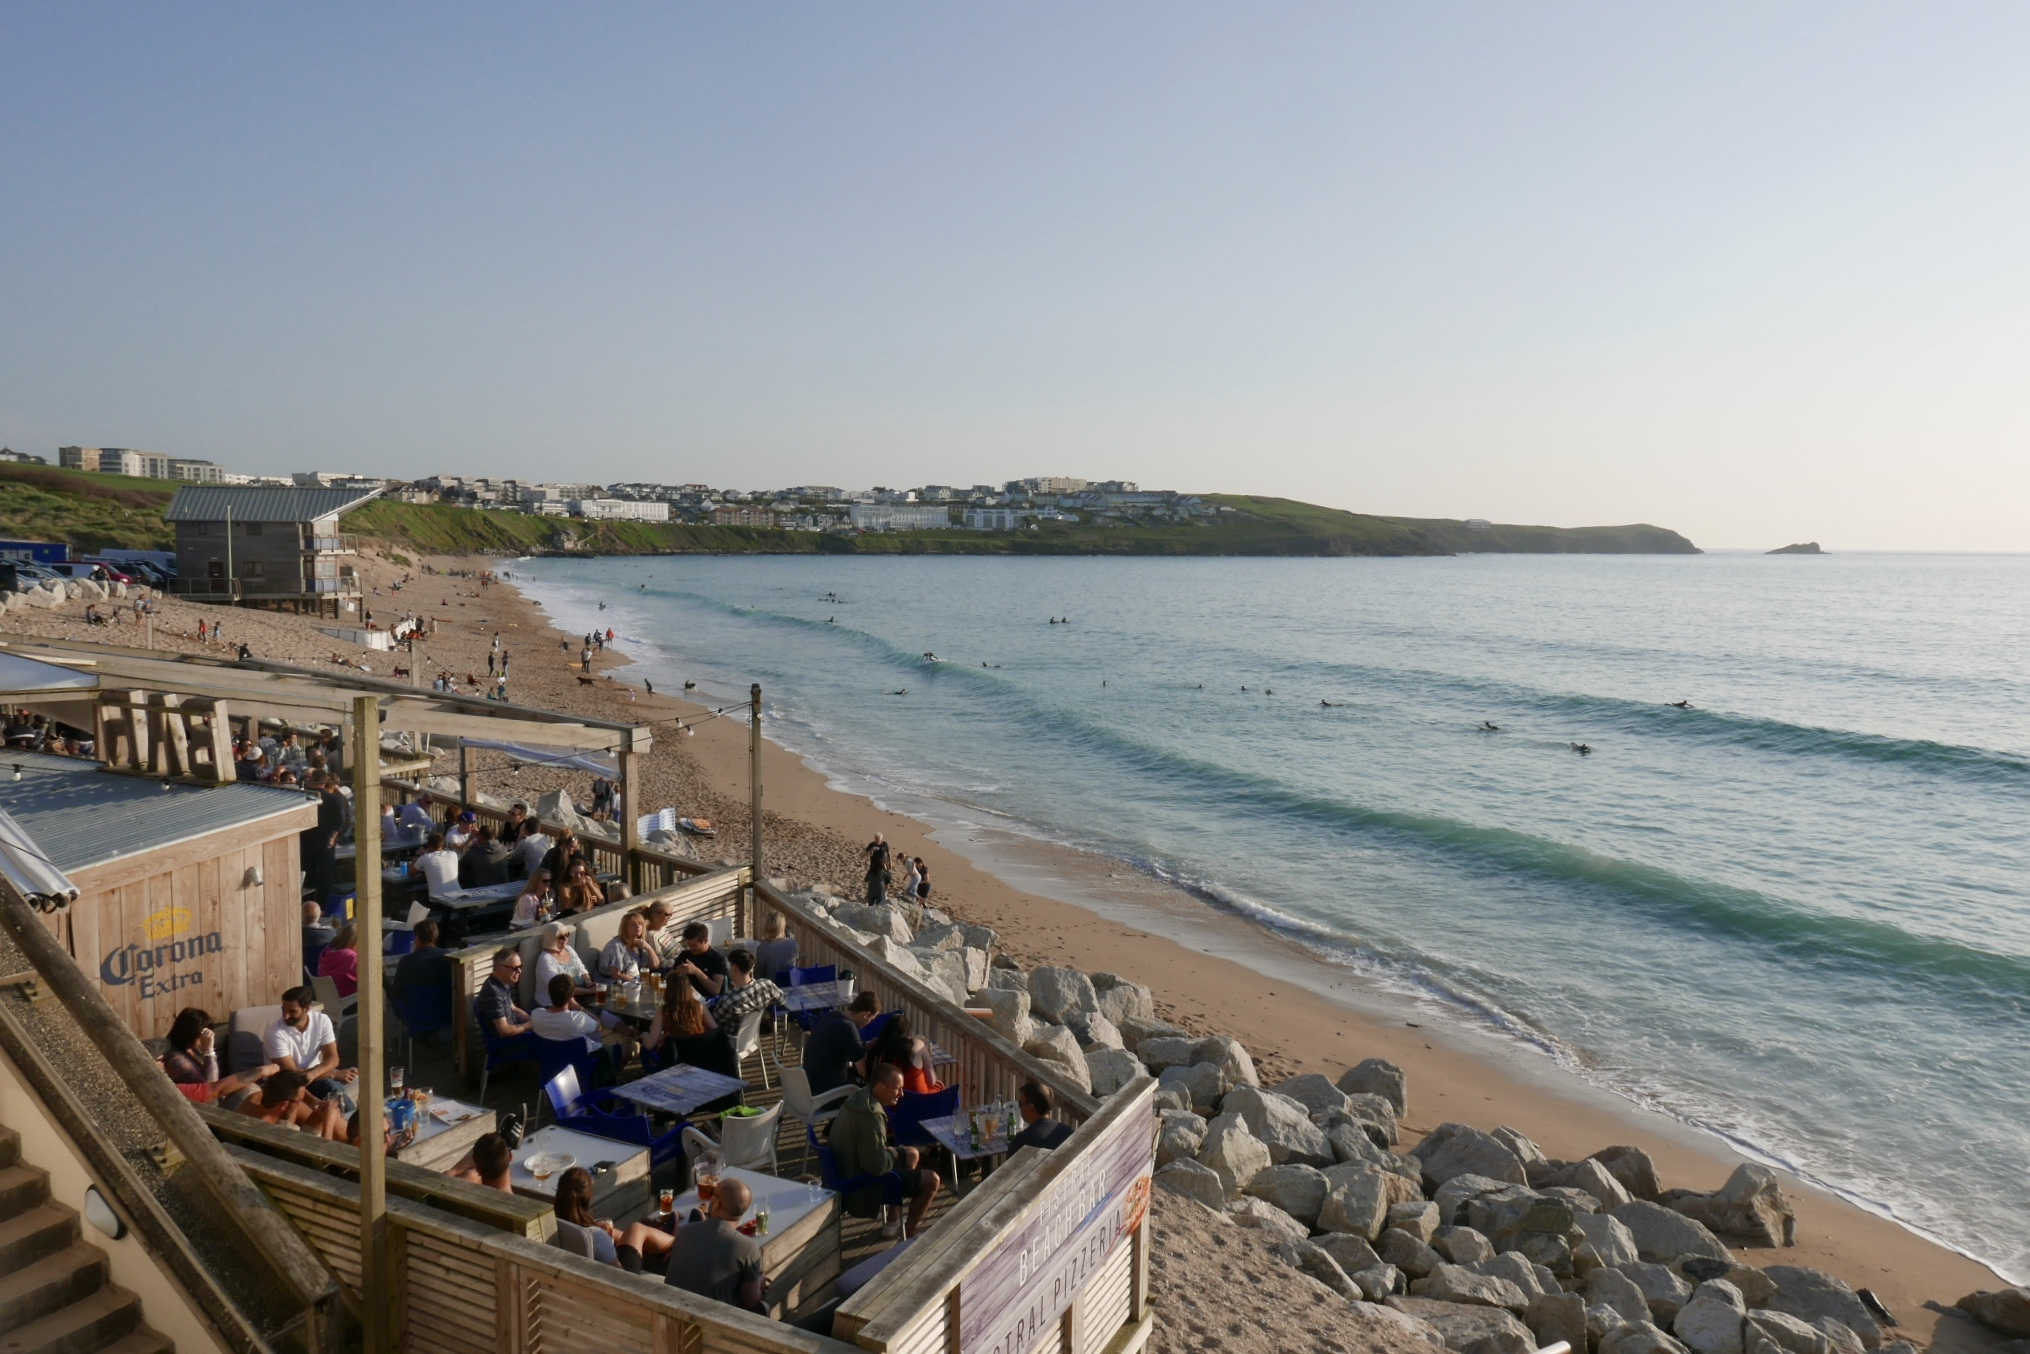 Cornwall Food ✦ The Fish House, Fistral